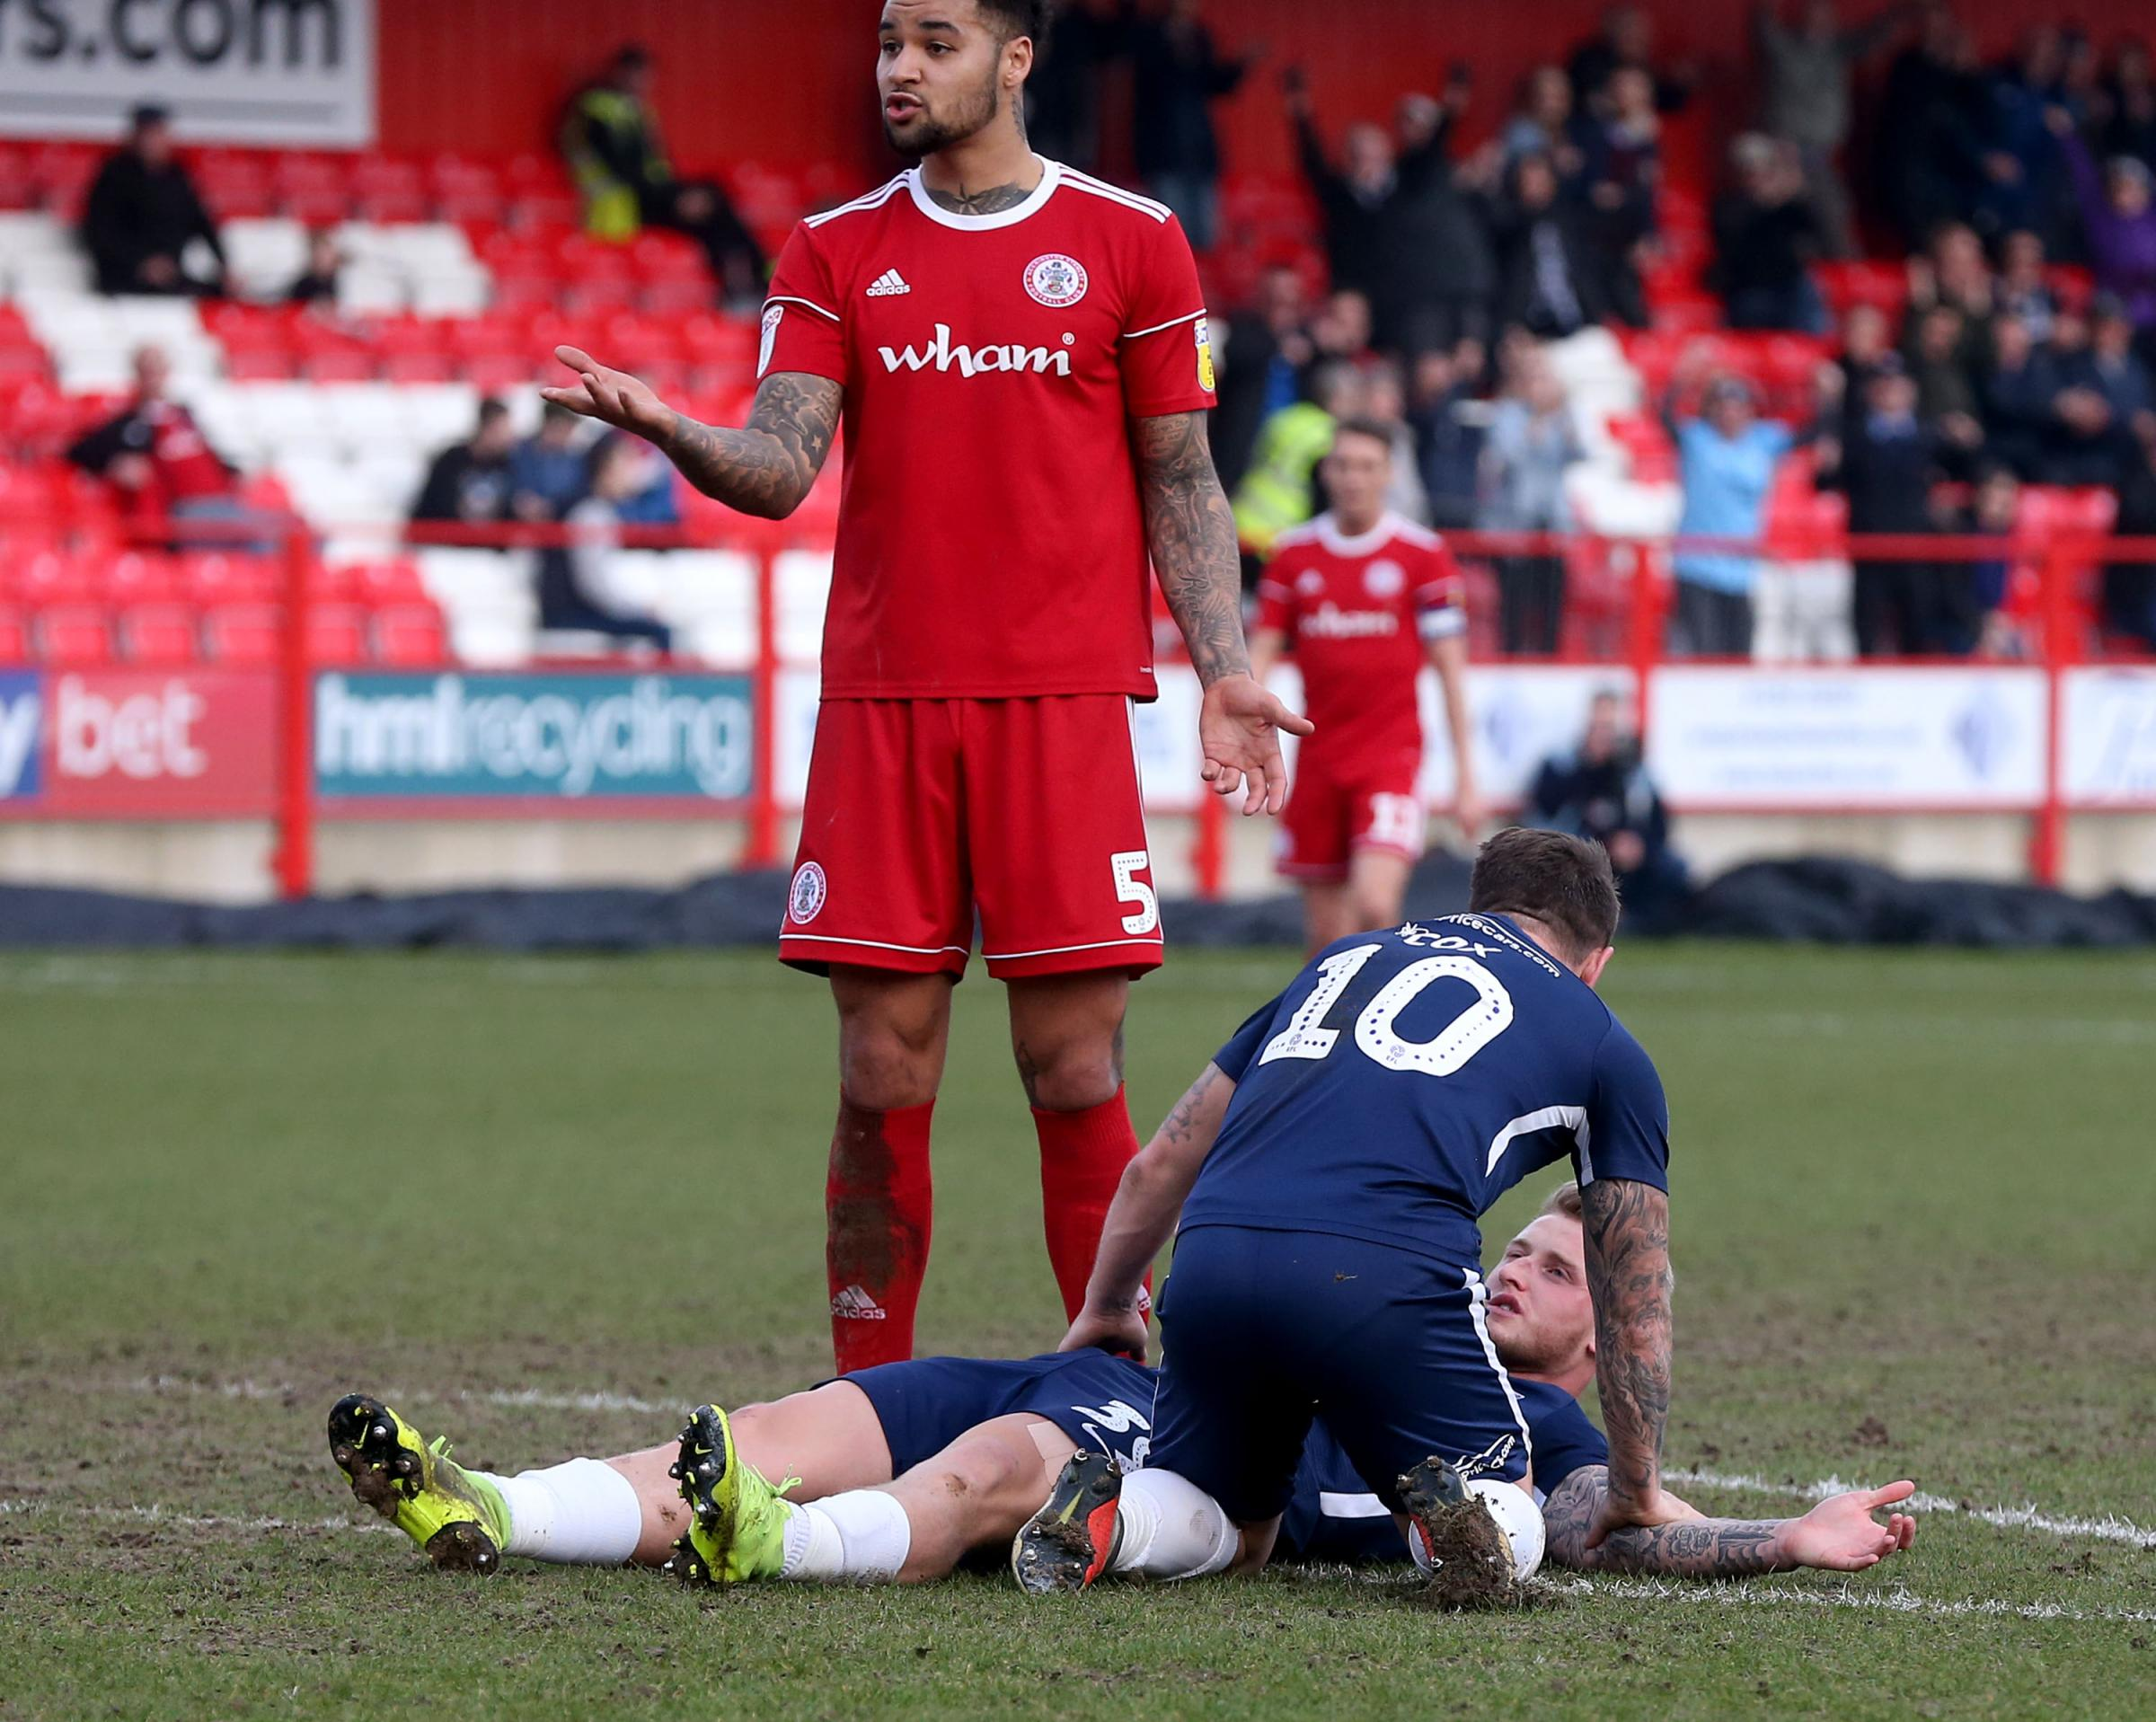 Painful - Stephen Humphrys broke his nose when scoring at Accrington Stanley